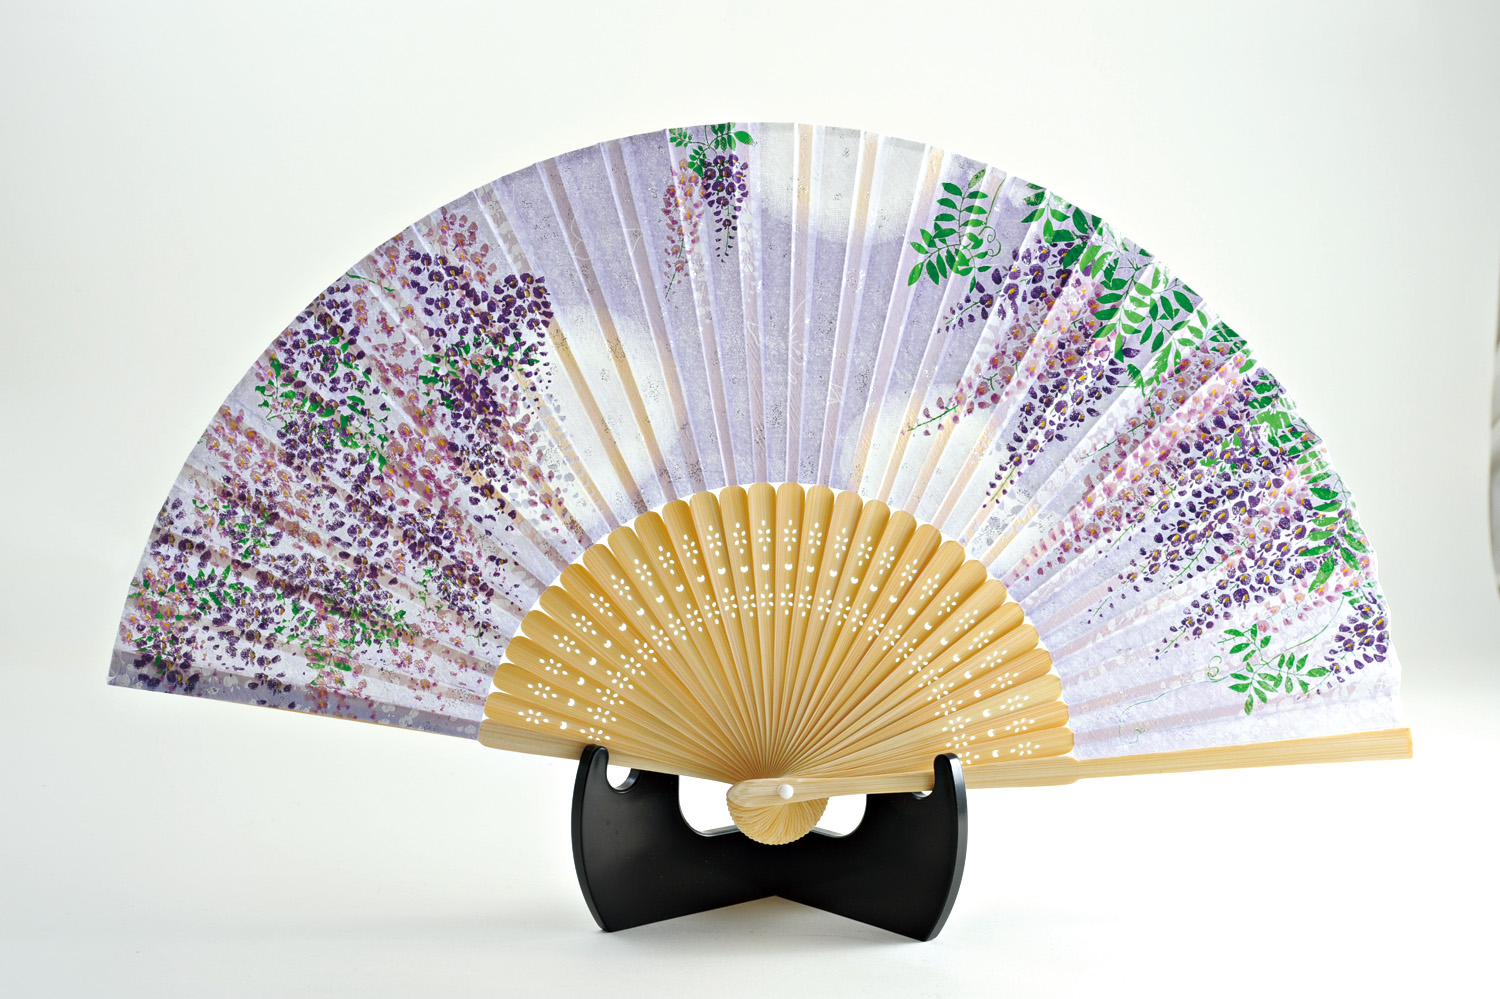 silk fan |Floral pattern, Wisteria